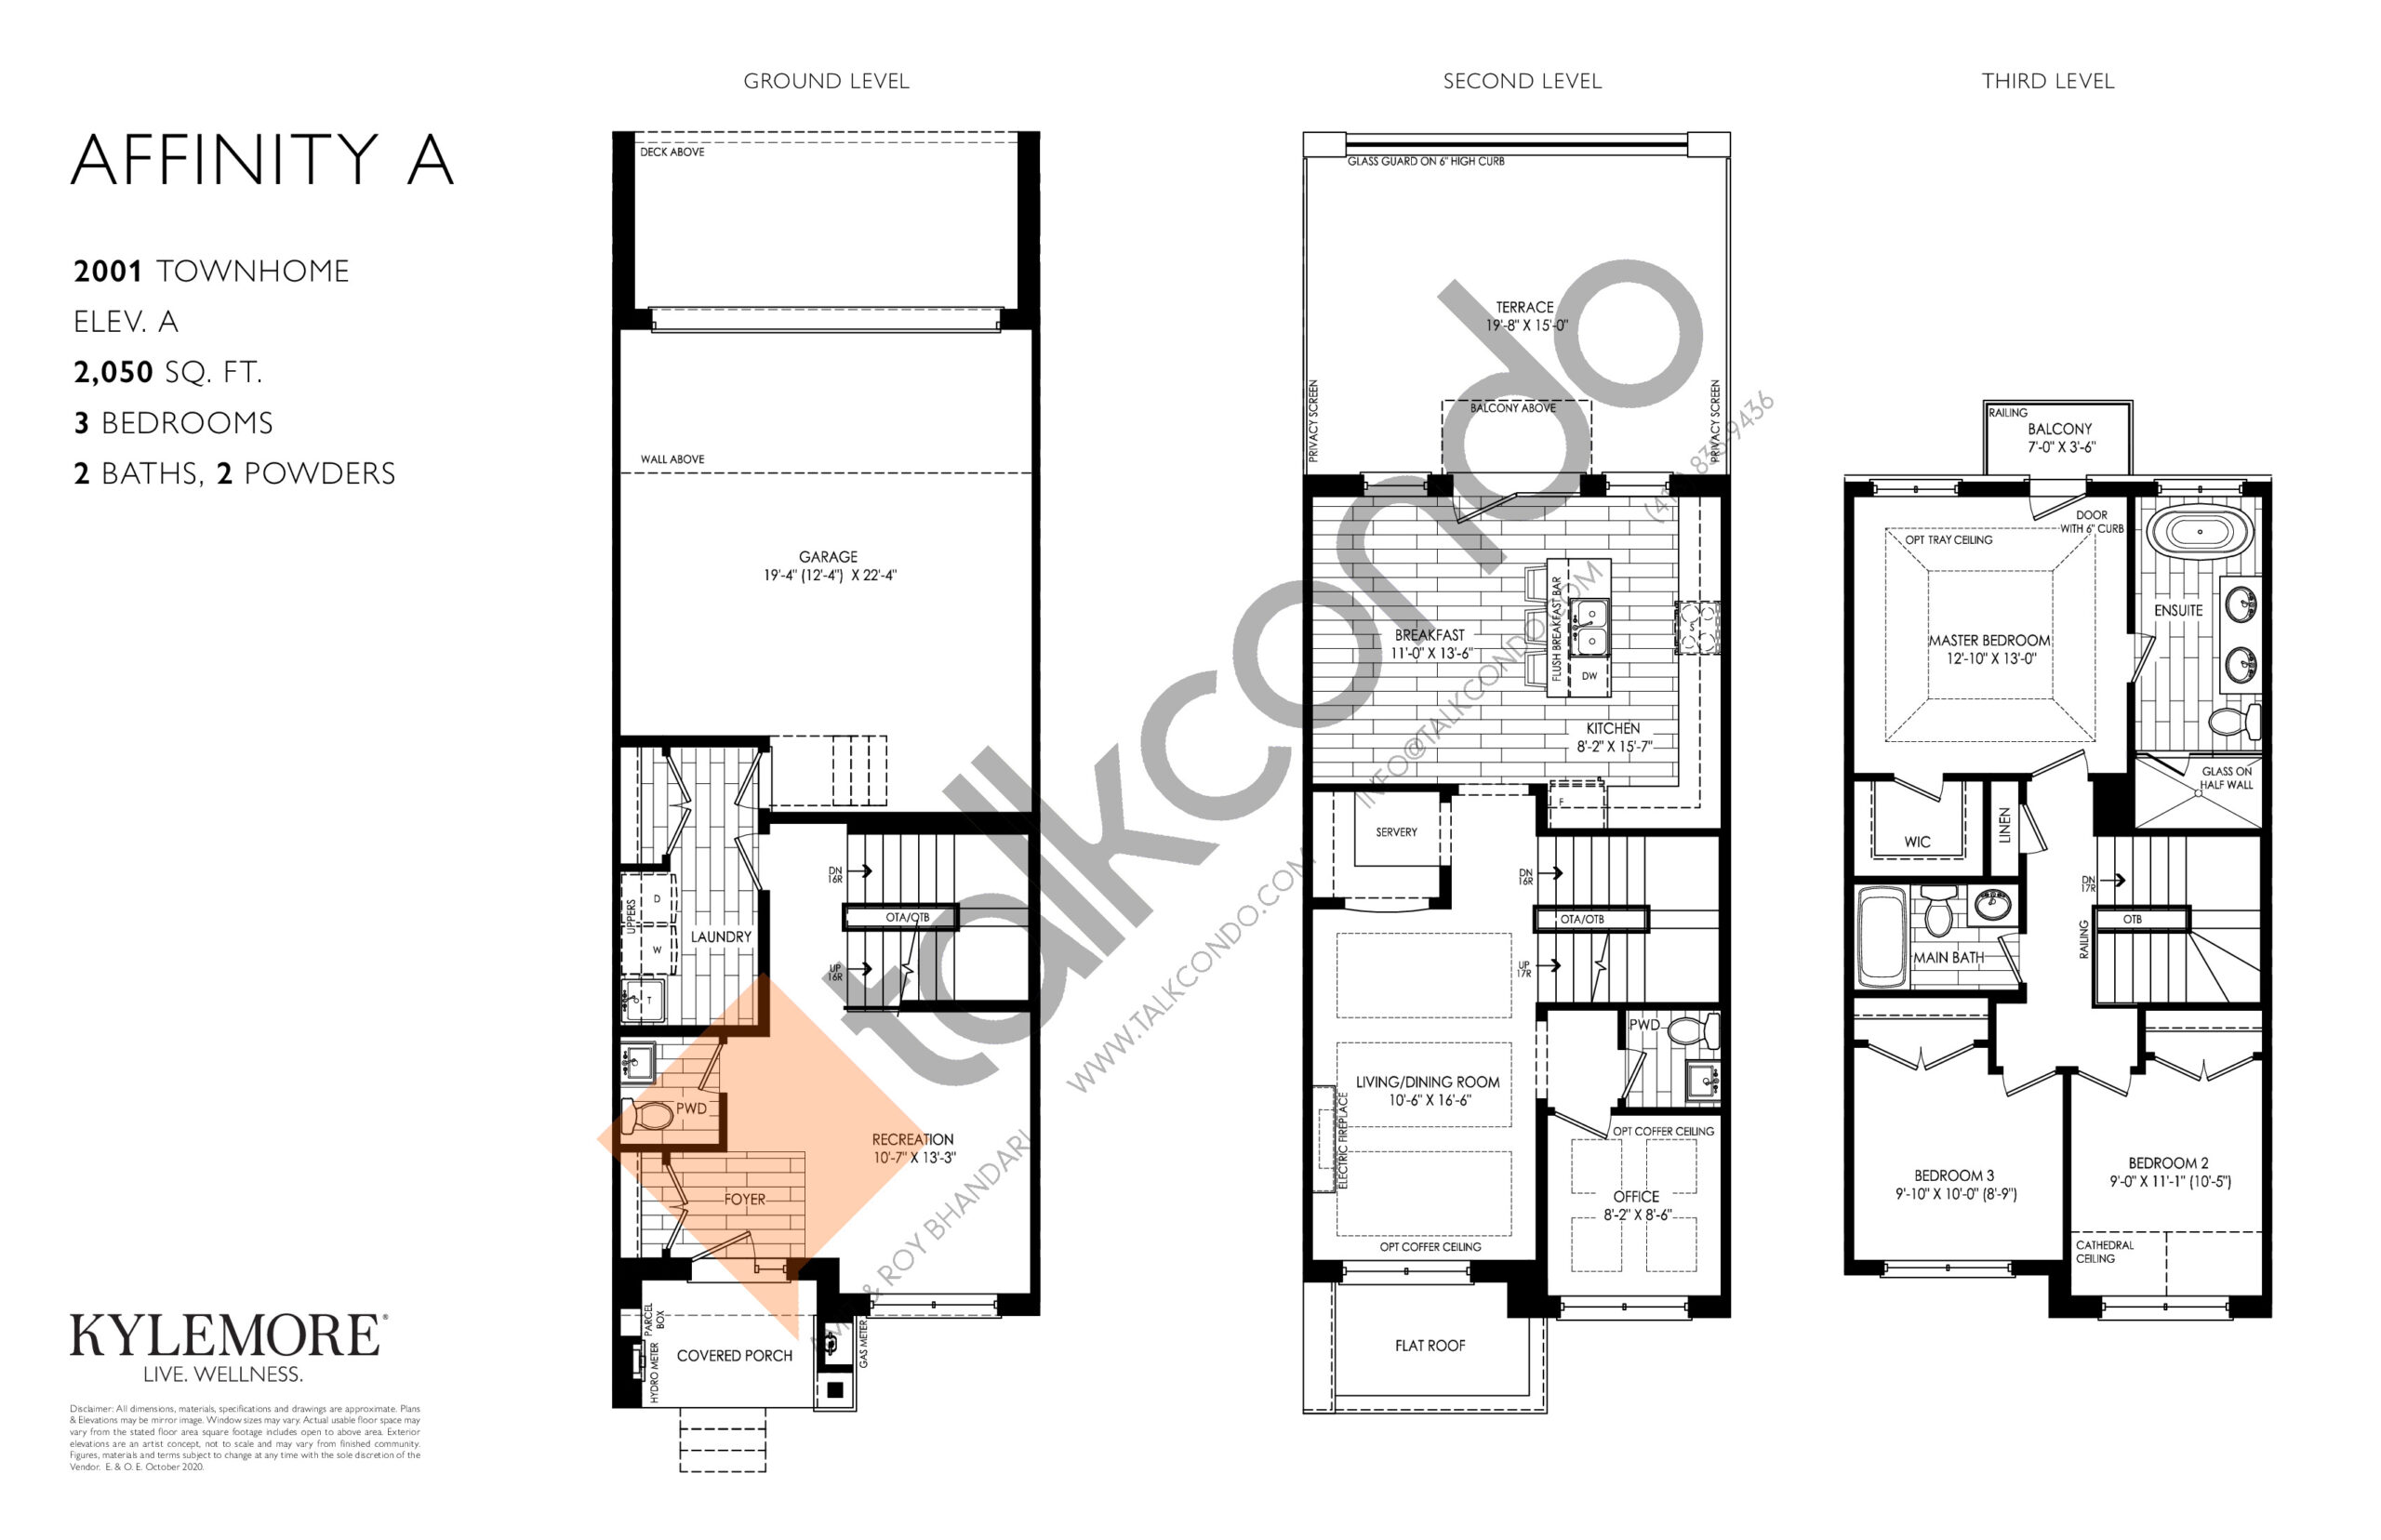 Affinity A Floor Plan at Angus Glen South Village - 2050 sq.ft